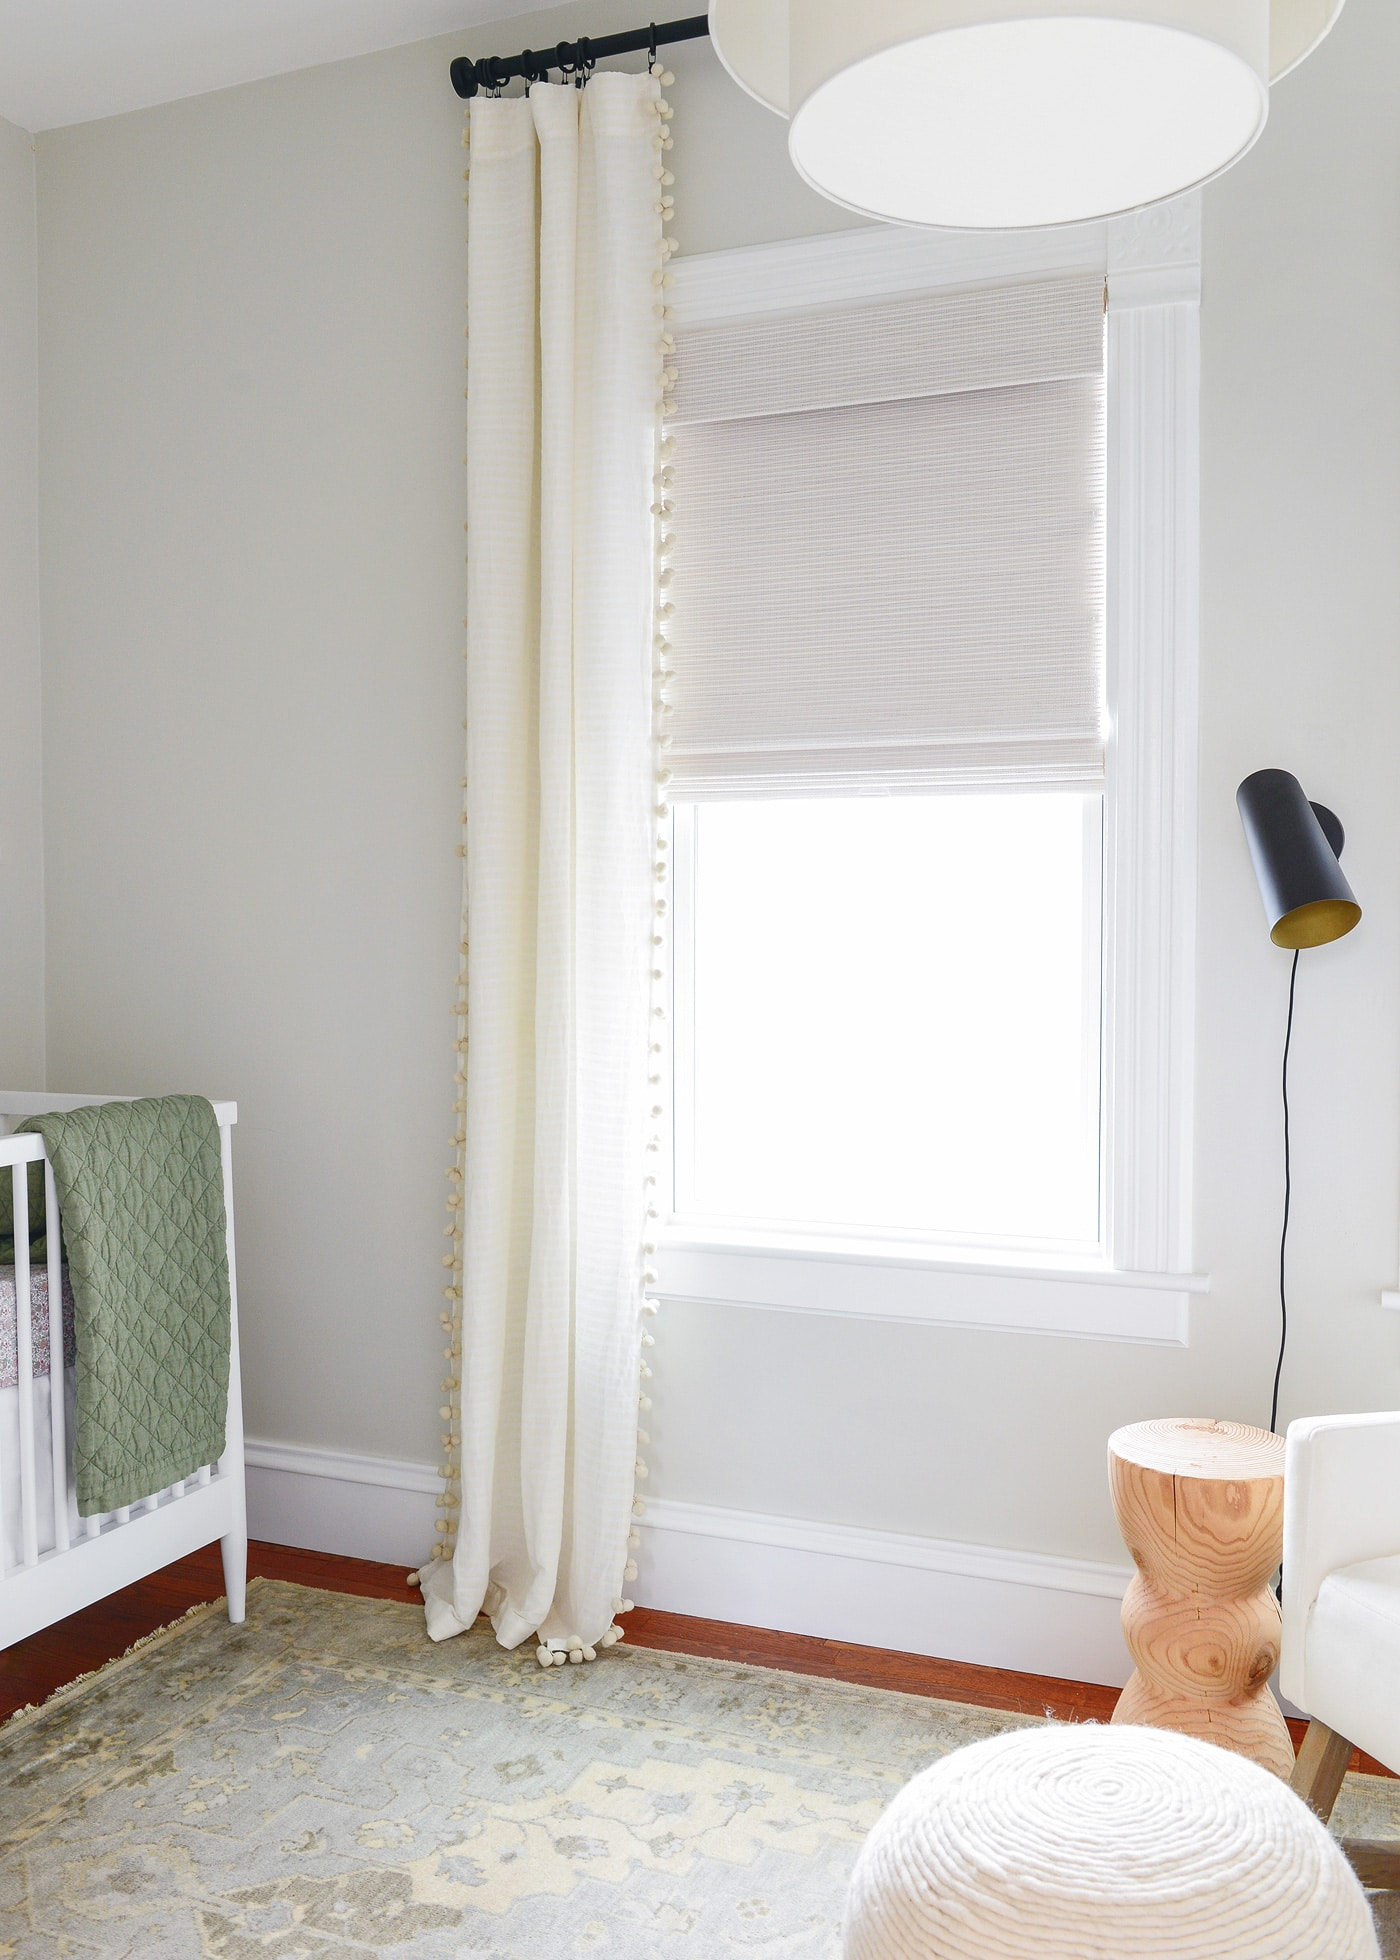 On Choosing Natural Shades In the Nursery